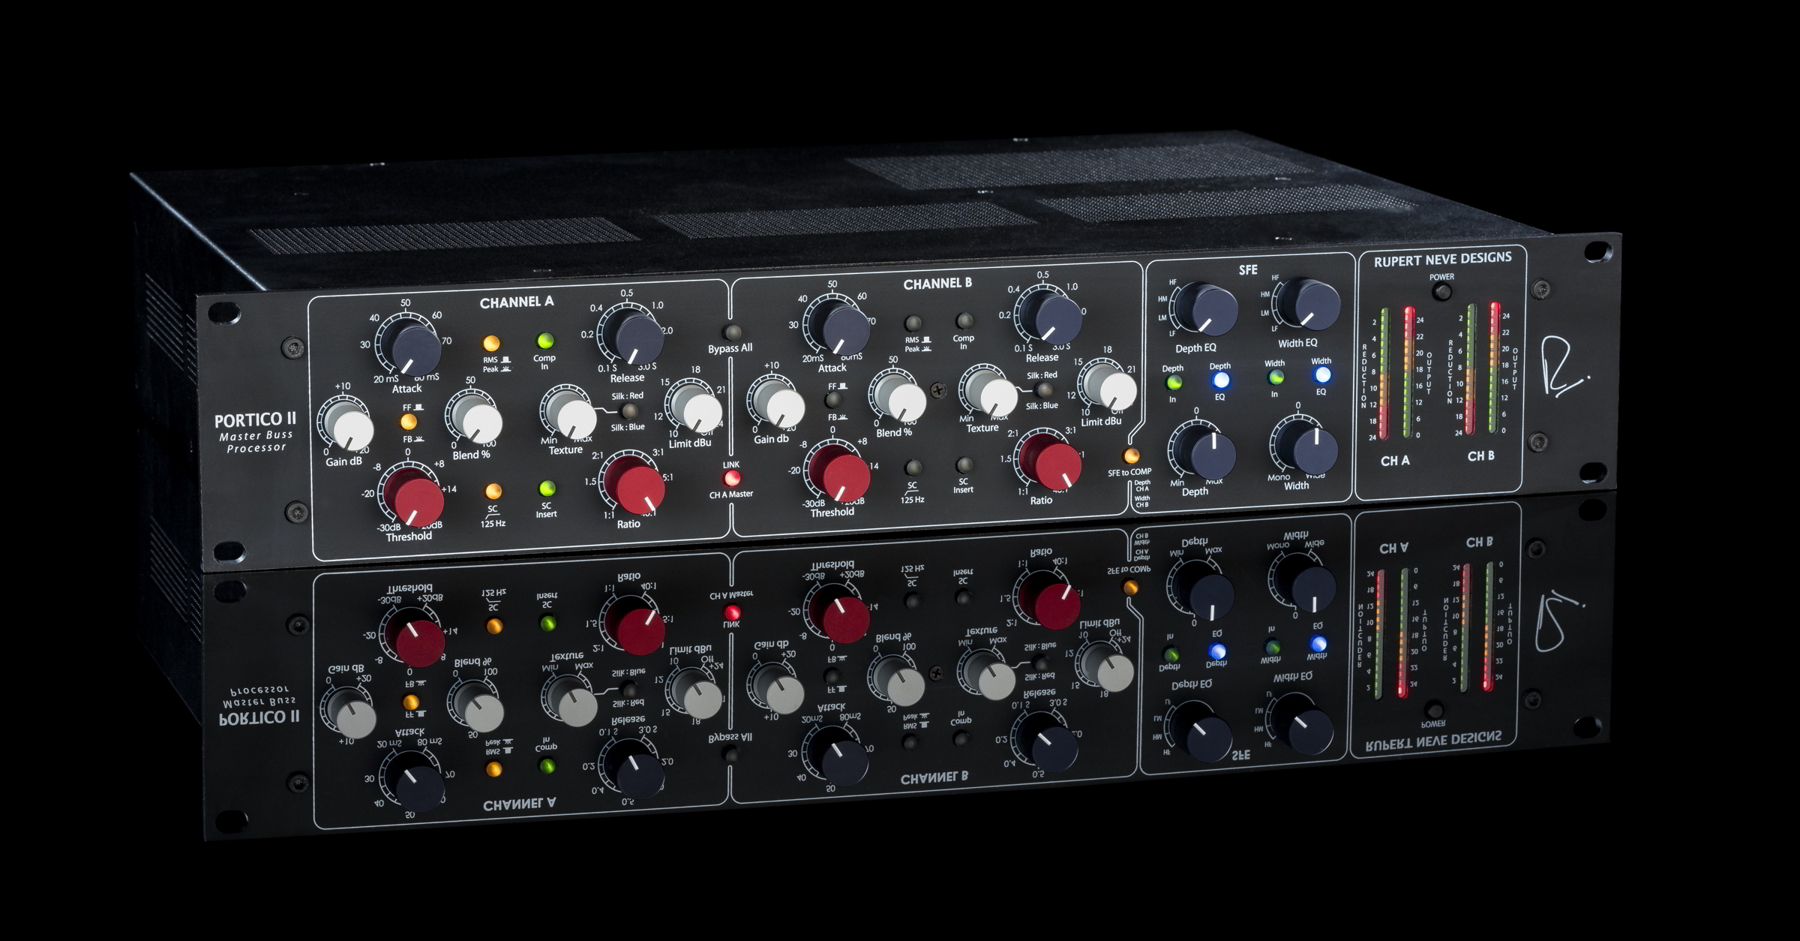 Rupert Neve Designs (RND),5059 Satellite 画像